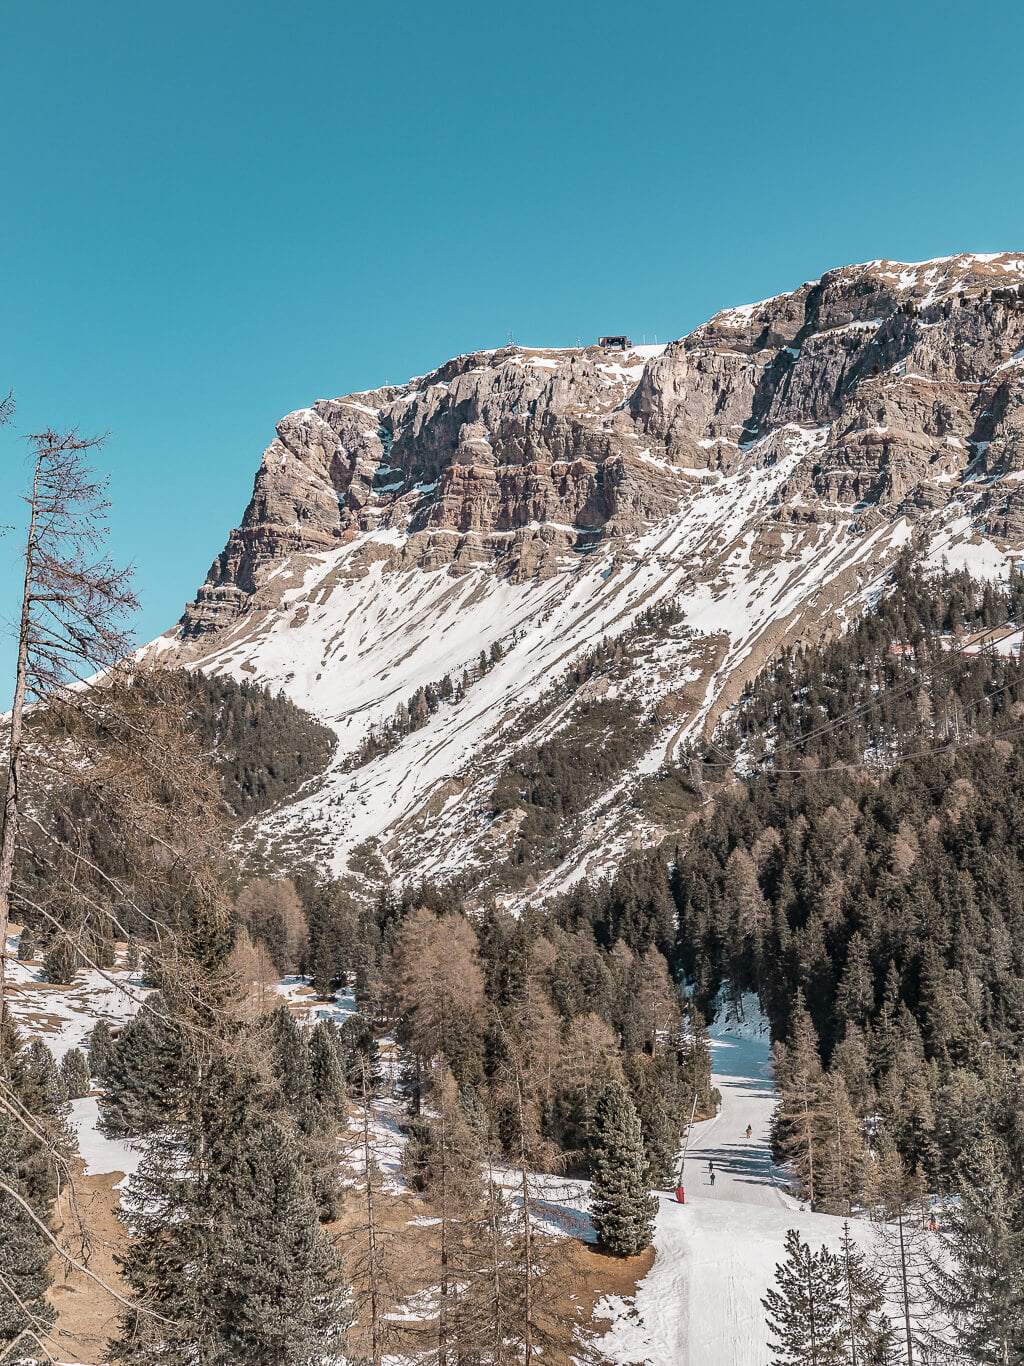 Seehof Nature Retreat - Recharging your Battery in the Italian Dolomites